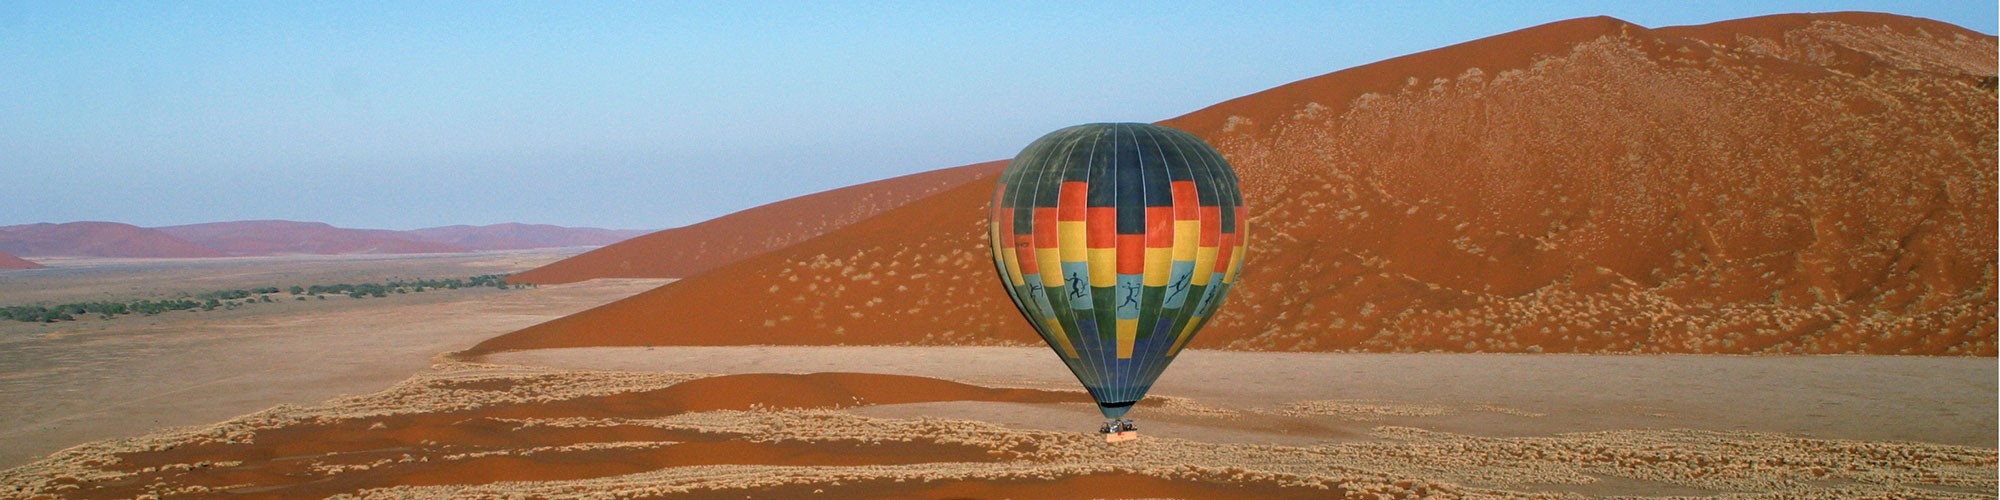 Sossusvlei-hot air ballooning